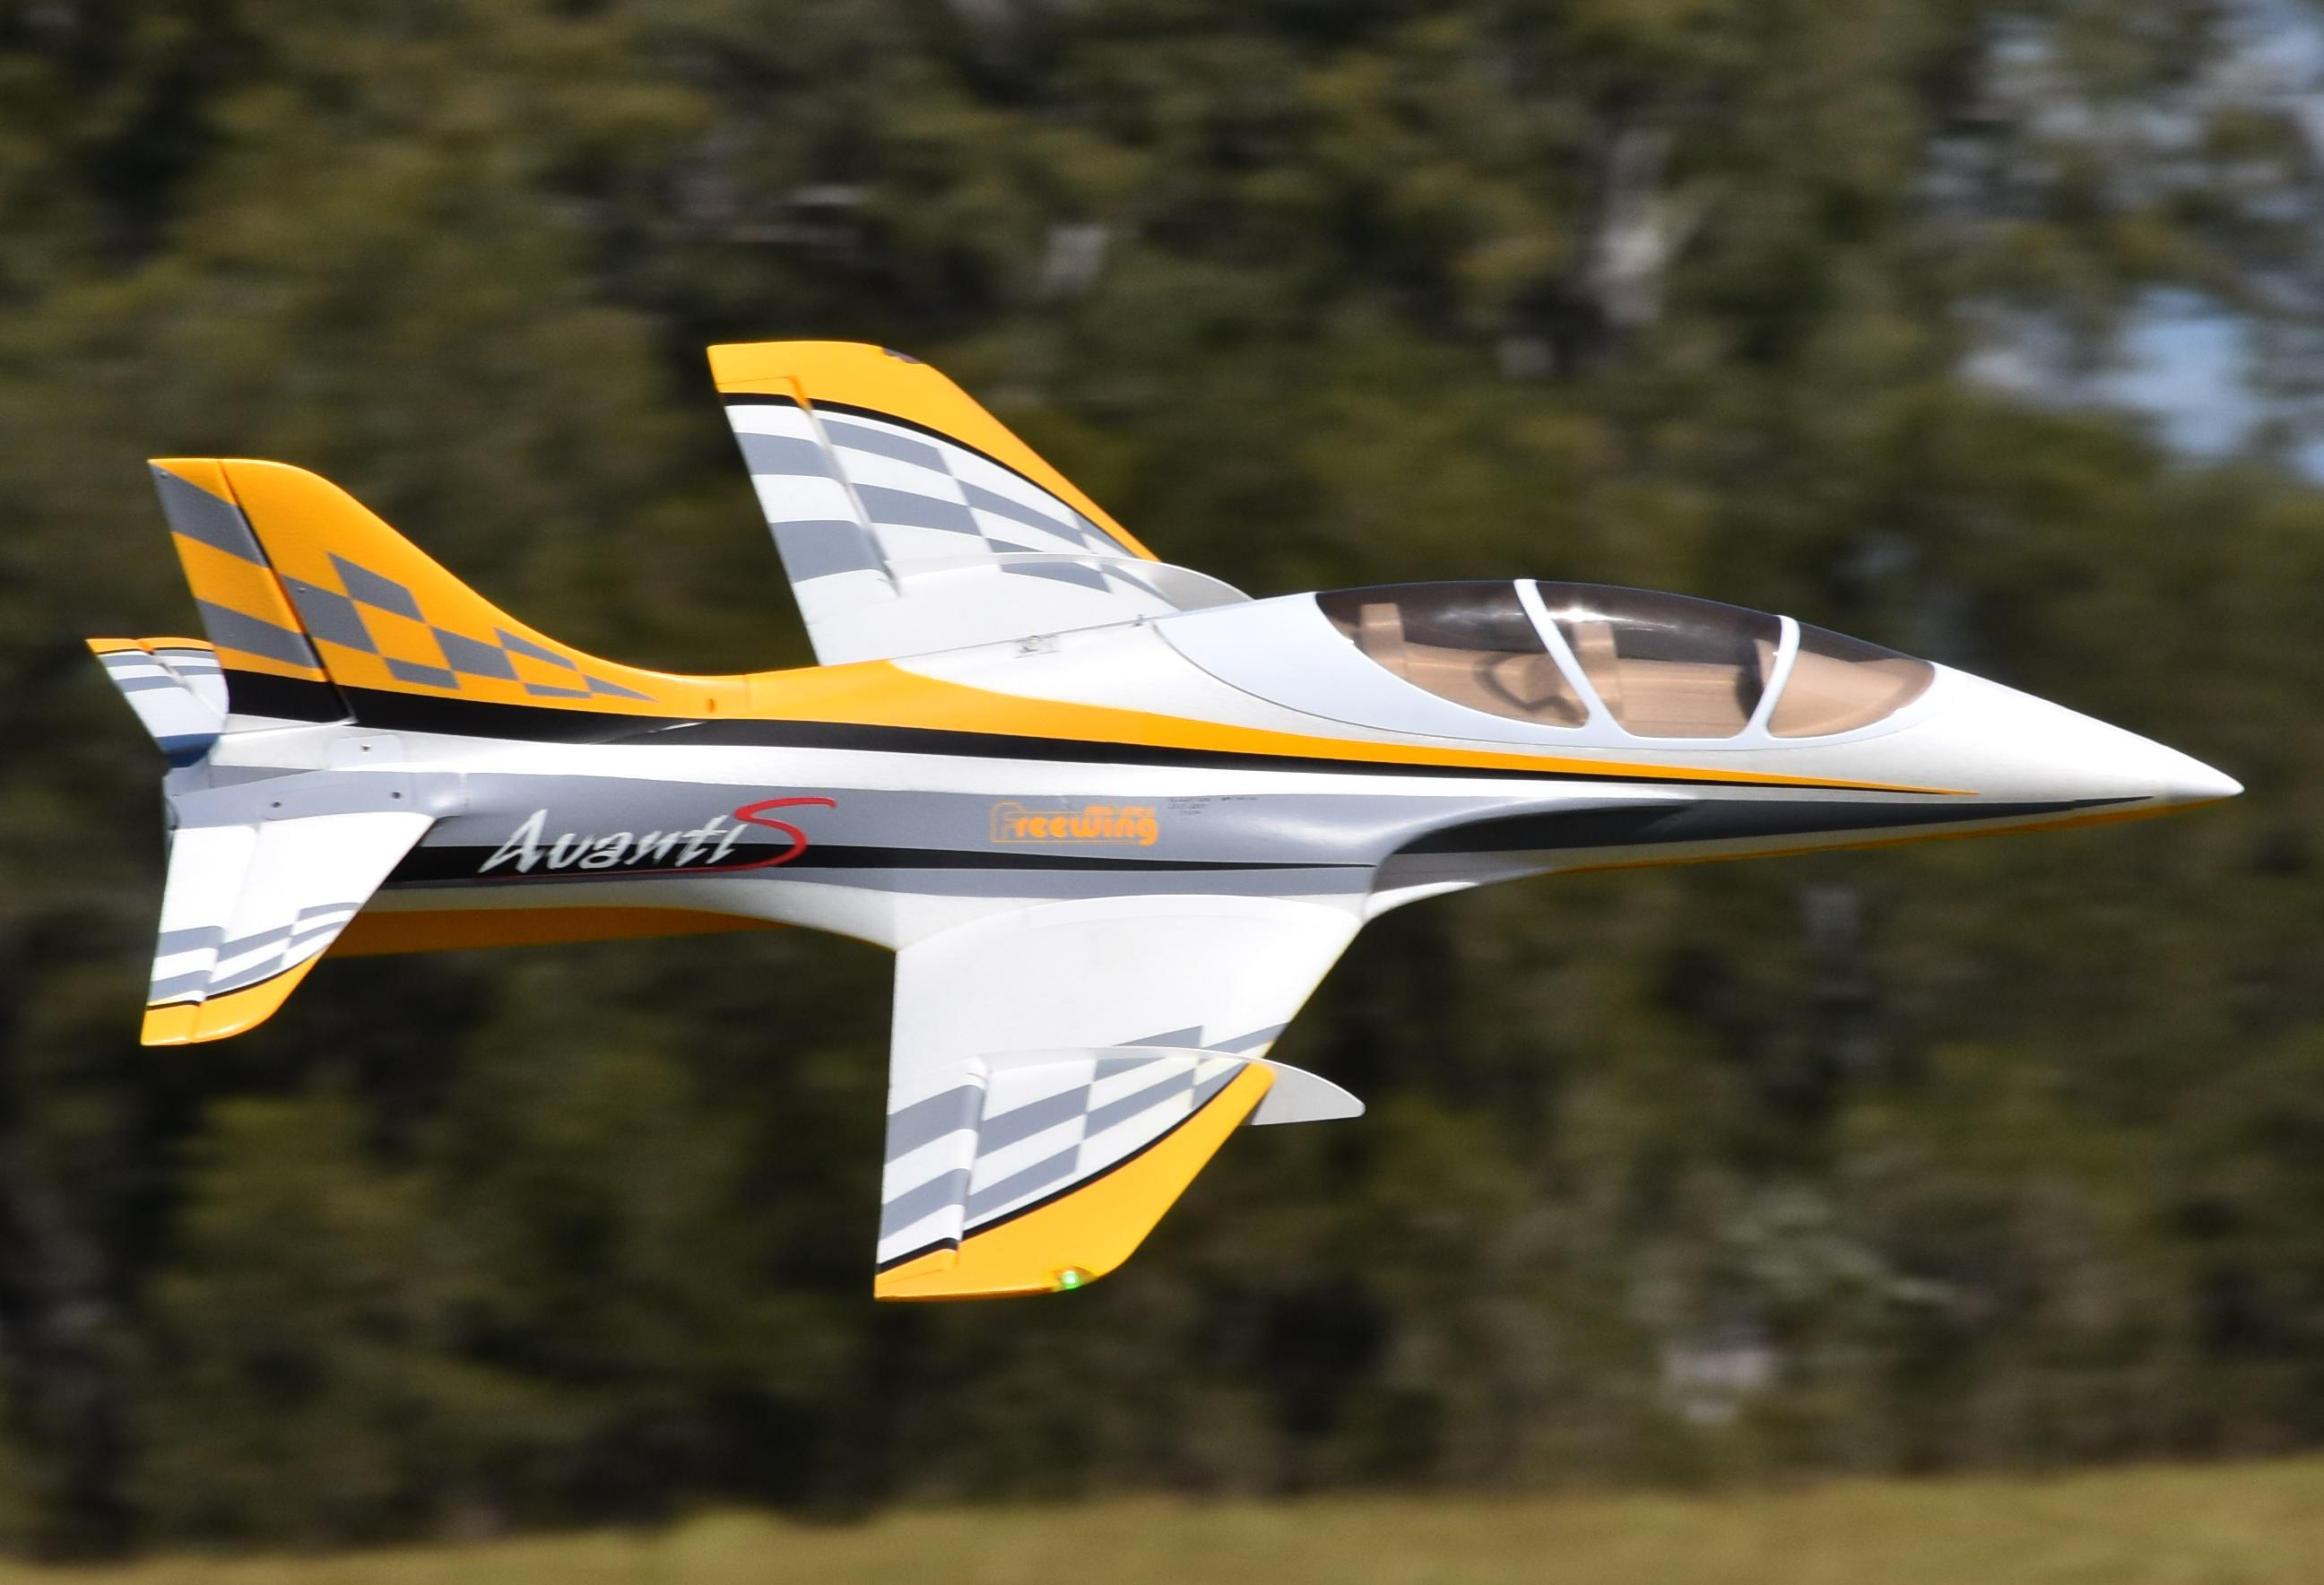 freewing avanti s 80mm edf ultimate sport jet pnp xtreme hobby australia 39 s home to freewing. Black Bedroom Furniture Sets. Home Design Ideas